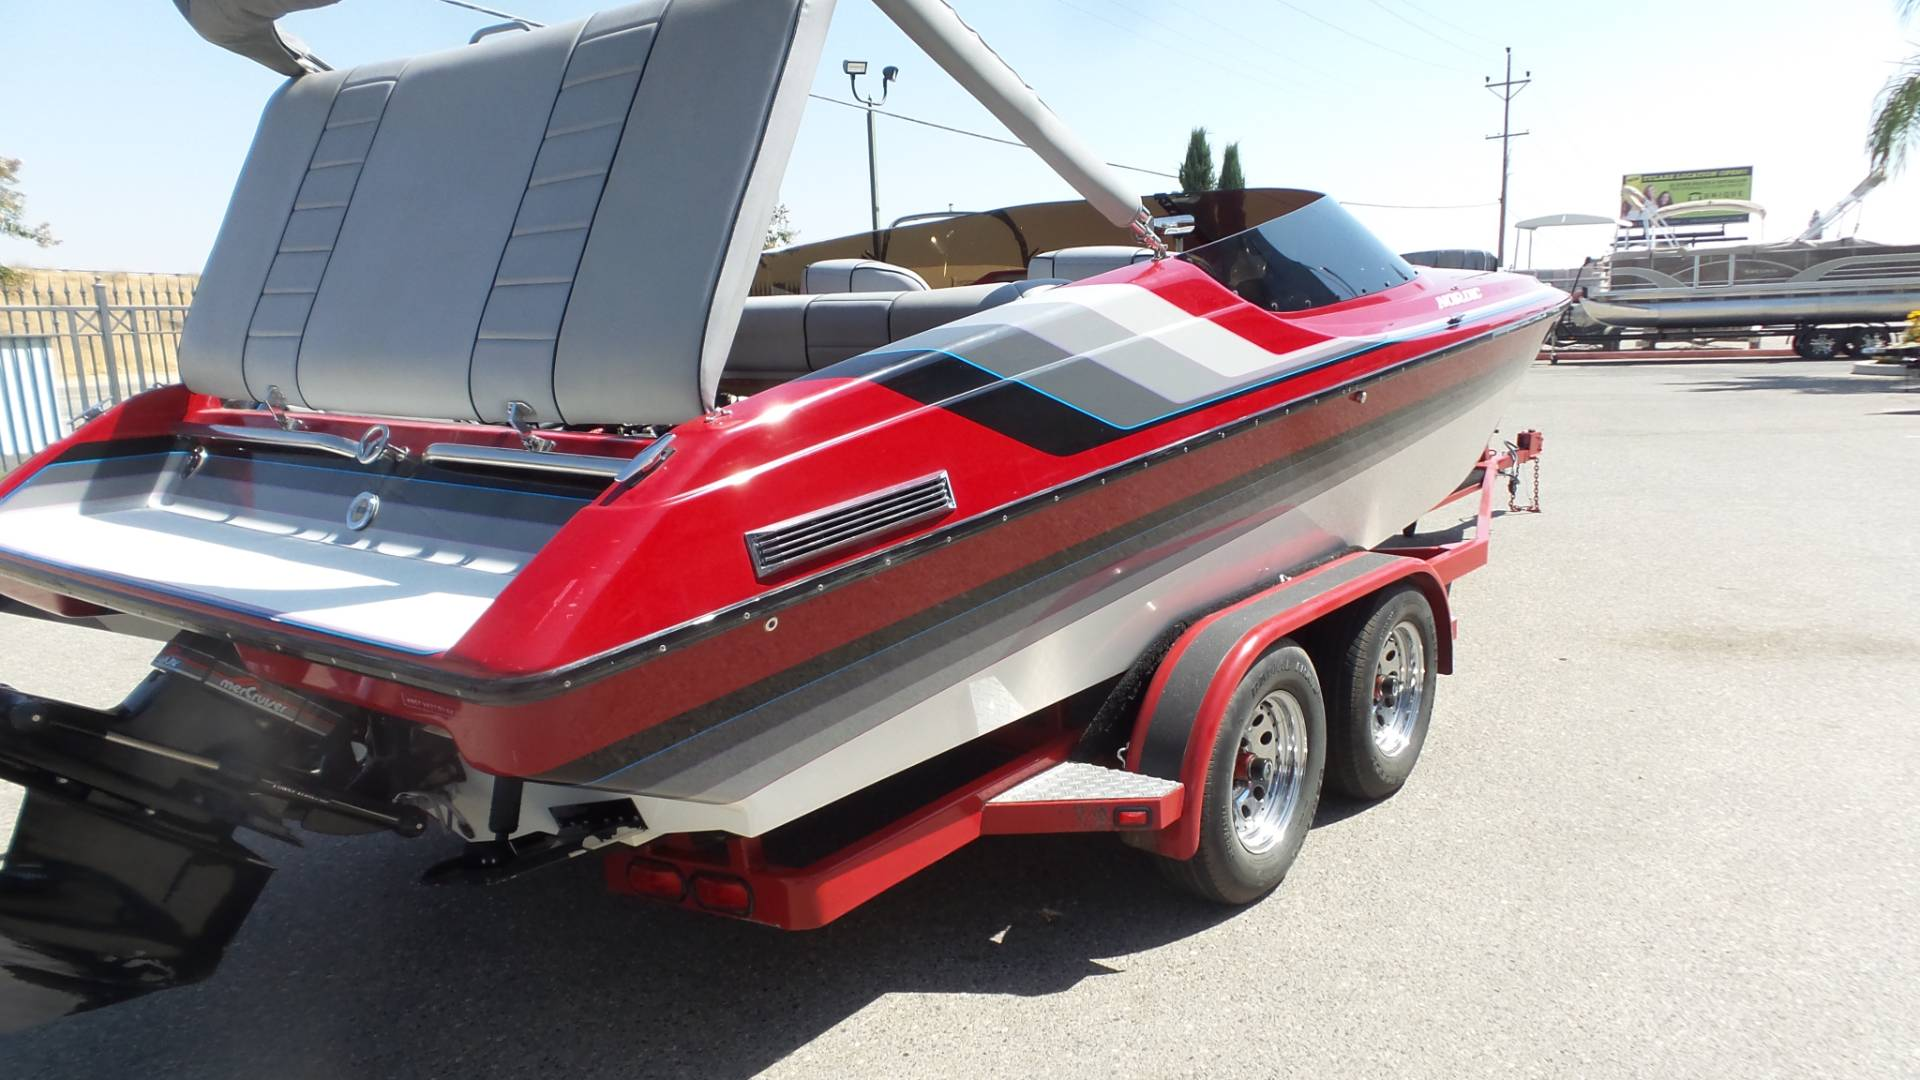 1992 Nordic Boats 25 Scandia in Madera, California - Photo 10